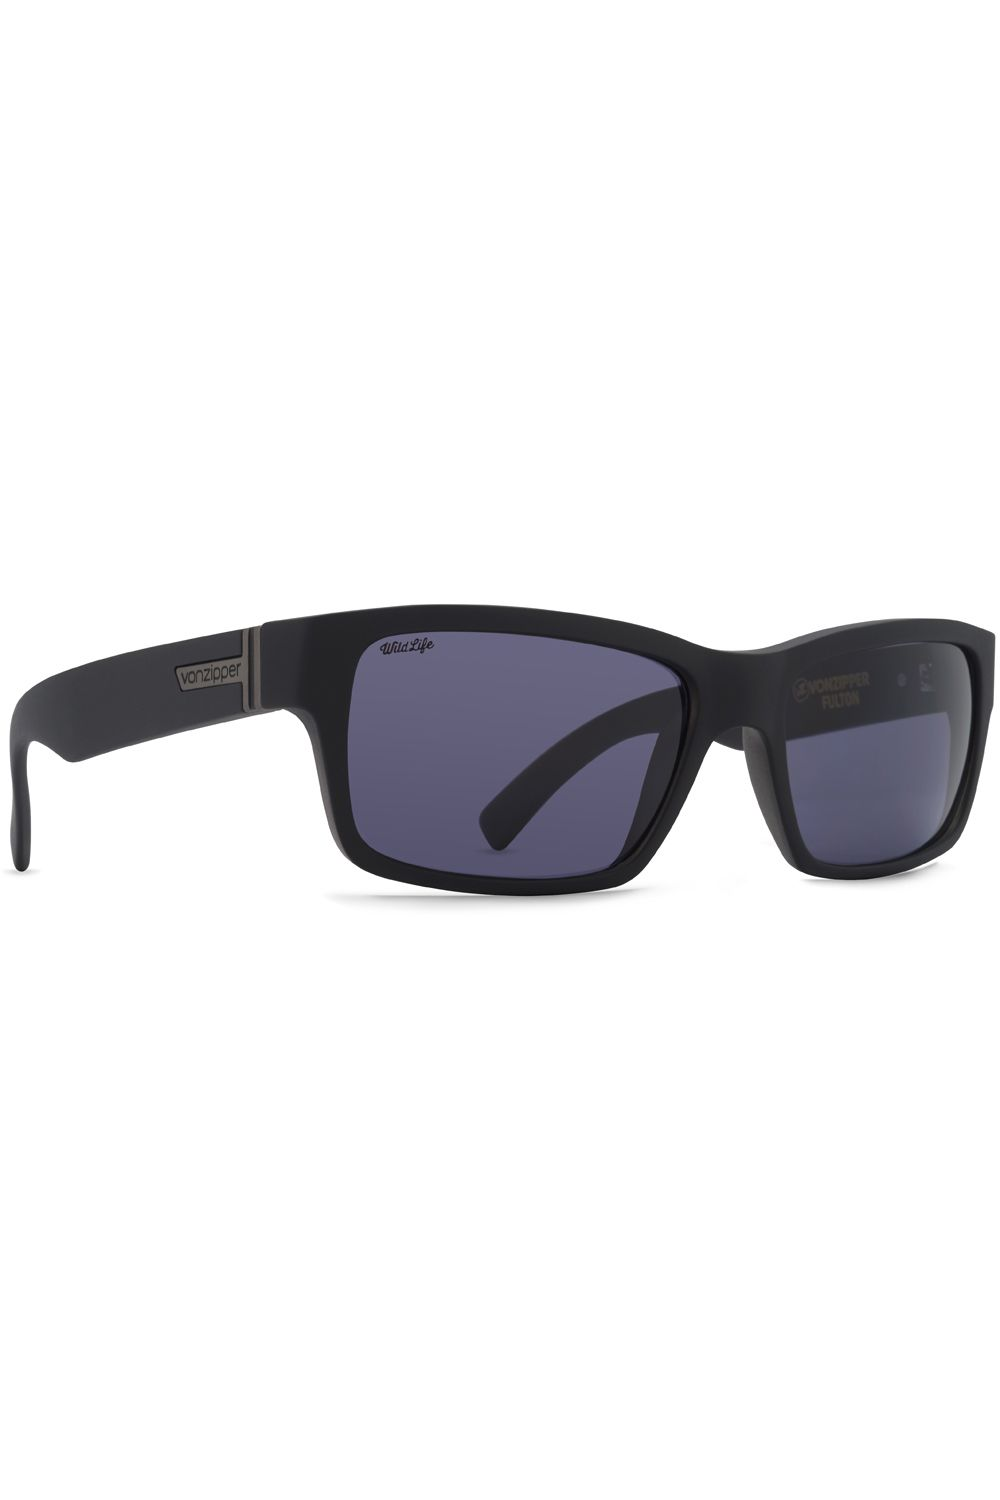 Oculos VonZipper FULTON WILDLIFE Black Satin / Wildlife Vintage Grey Polar